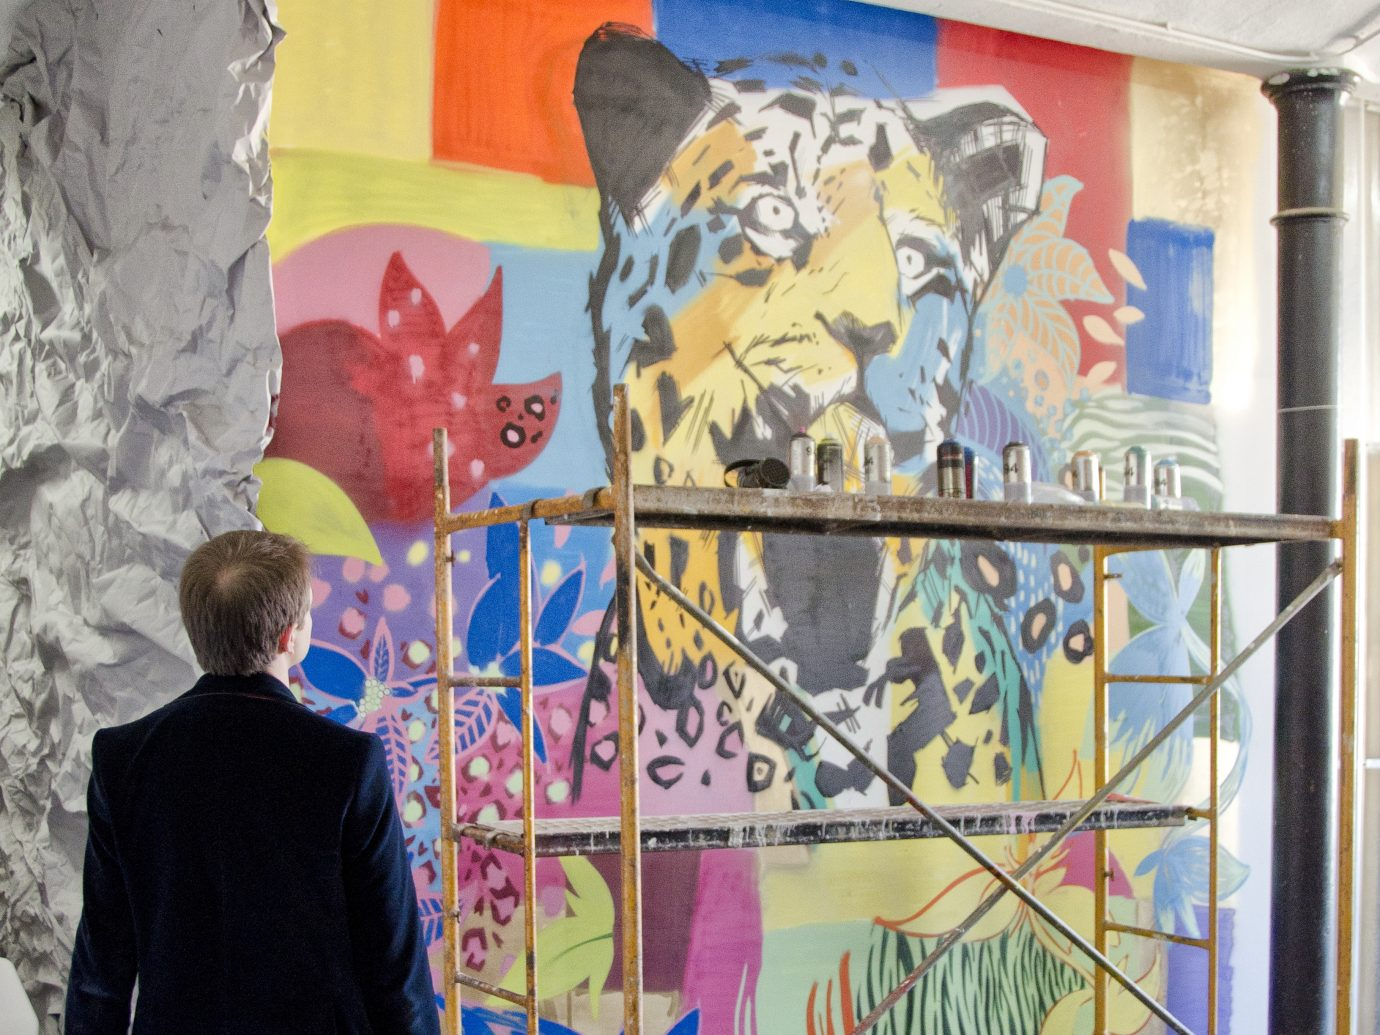 Man in a suit looking at a colorful wall art installation featuring a psychedelic leopard